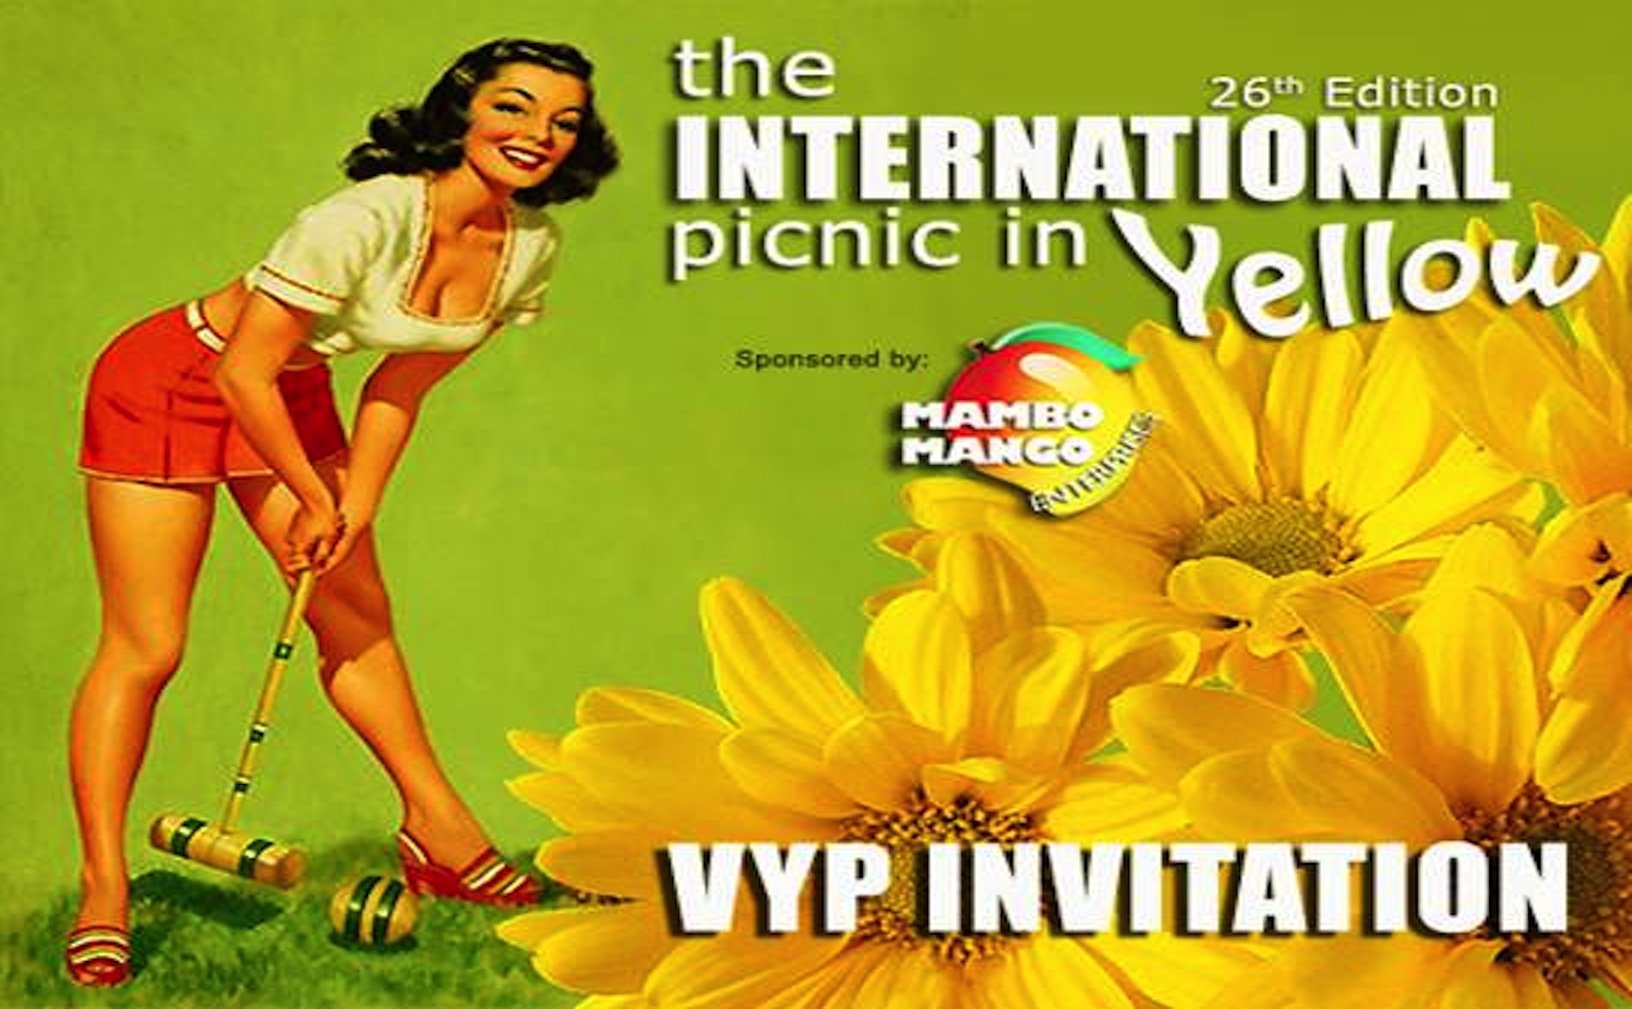 The INTERNATIONAL Picnic In Yellow